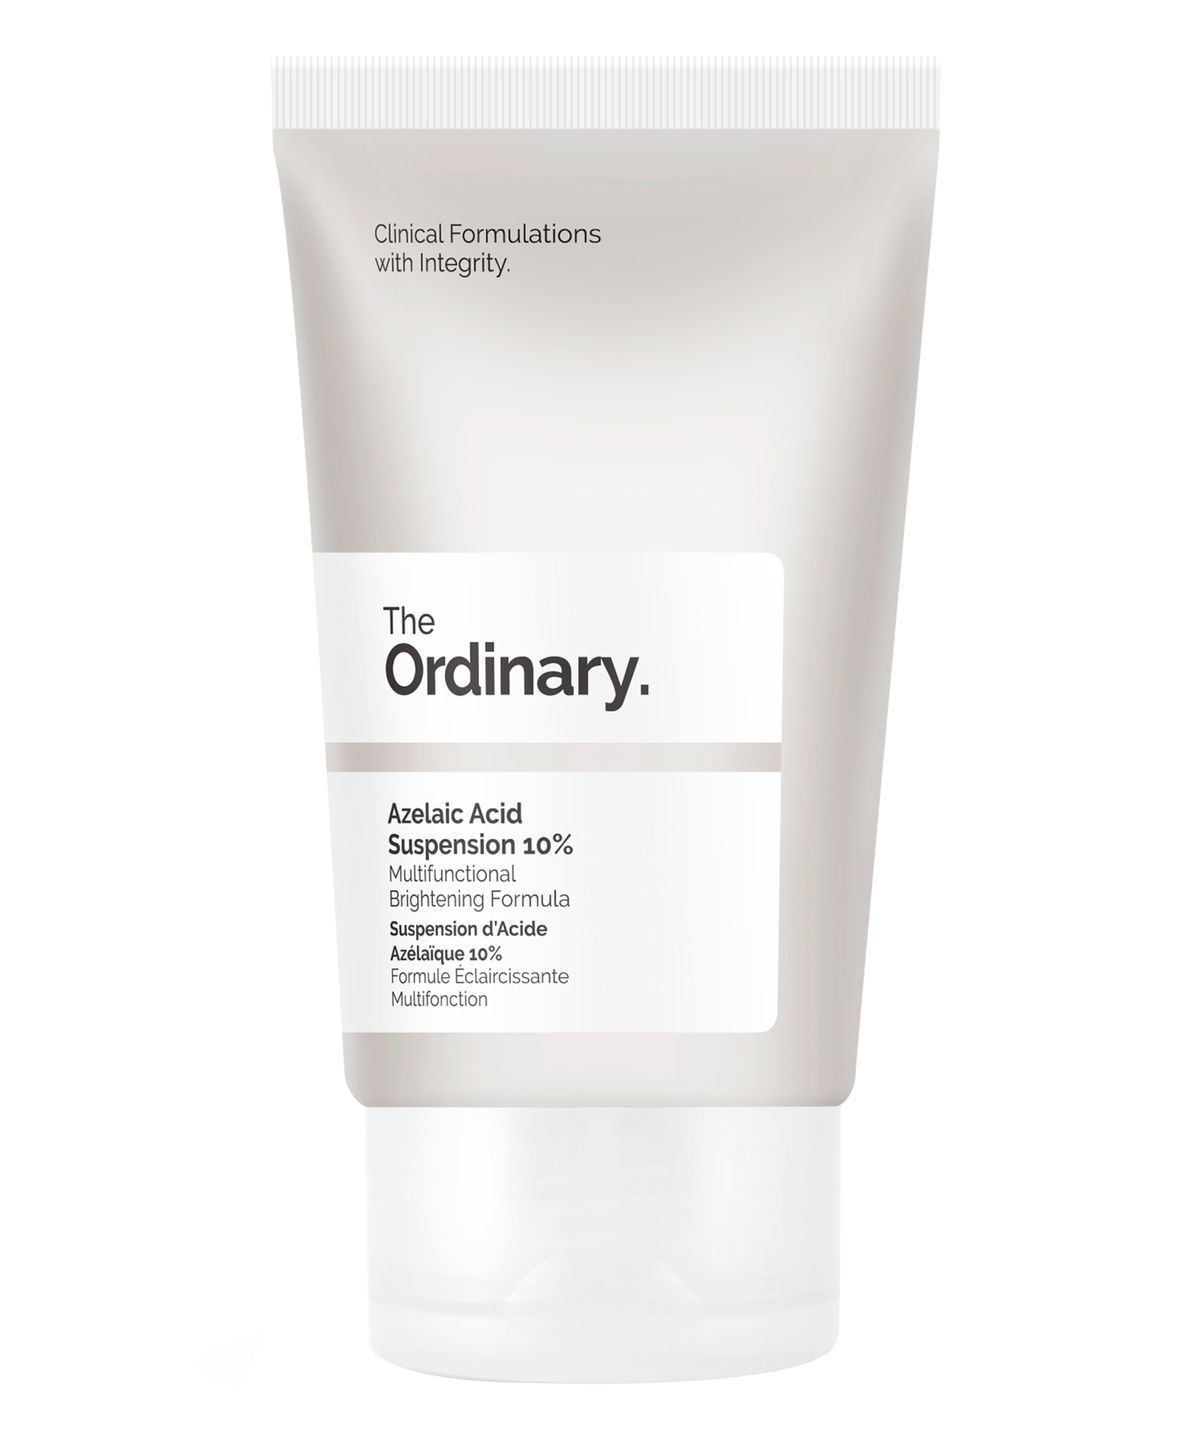 The Ordinary Azelaic Acid Suspension 10% сыворотка для лица 30 мл